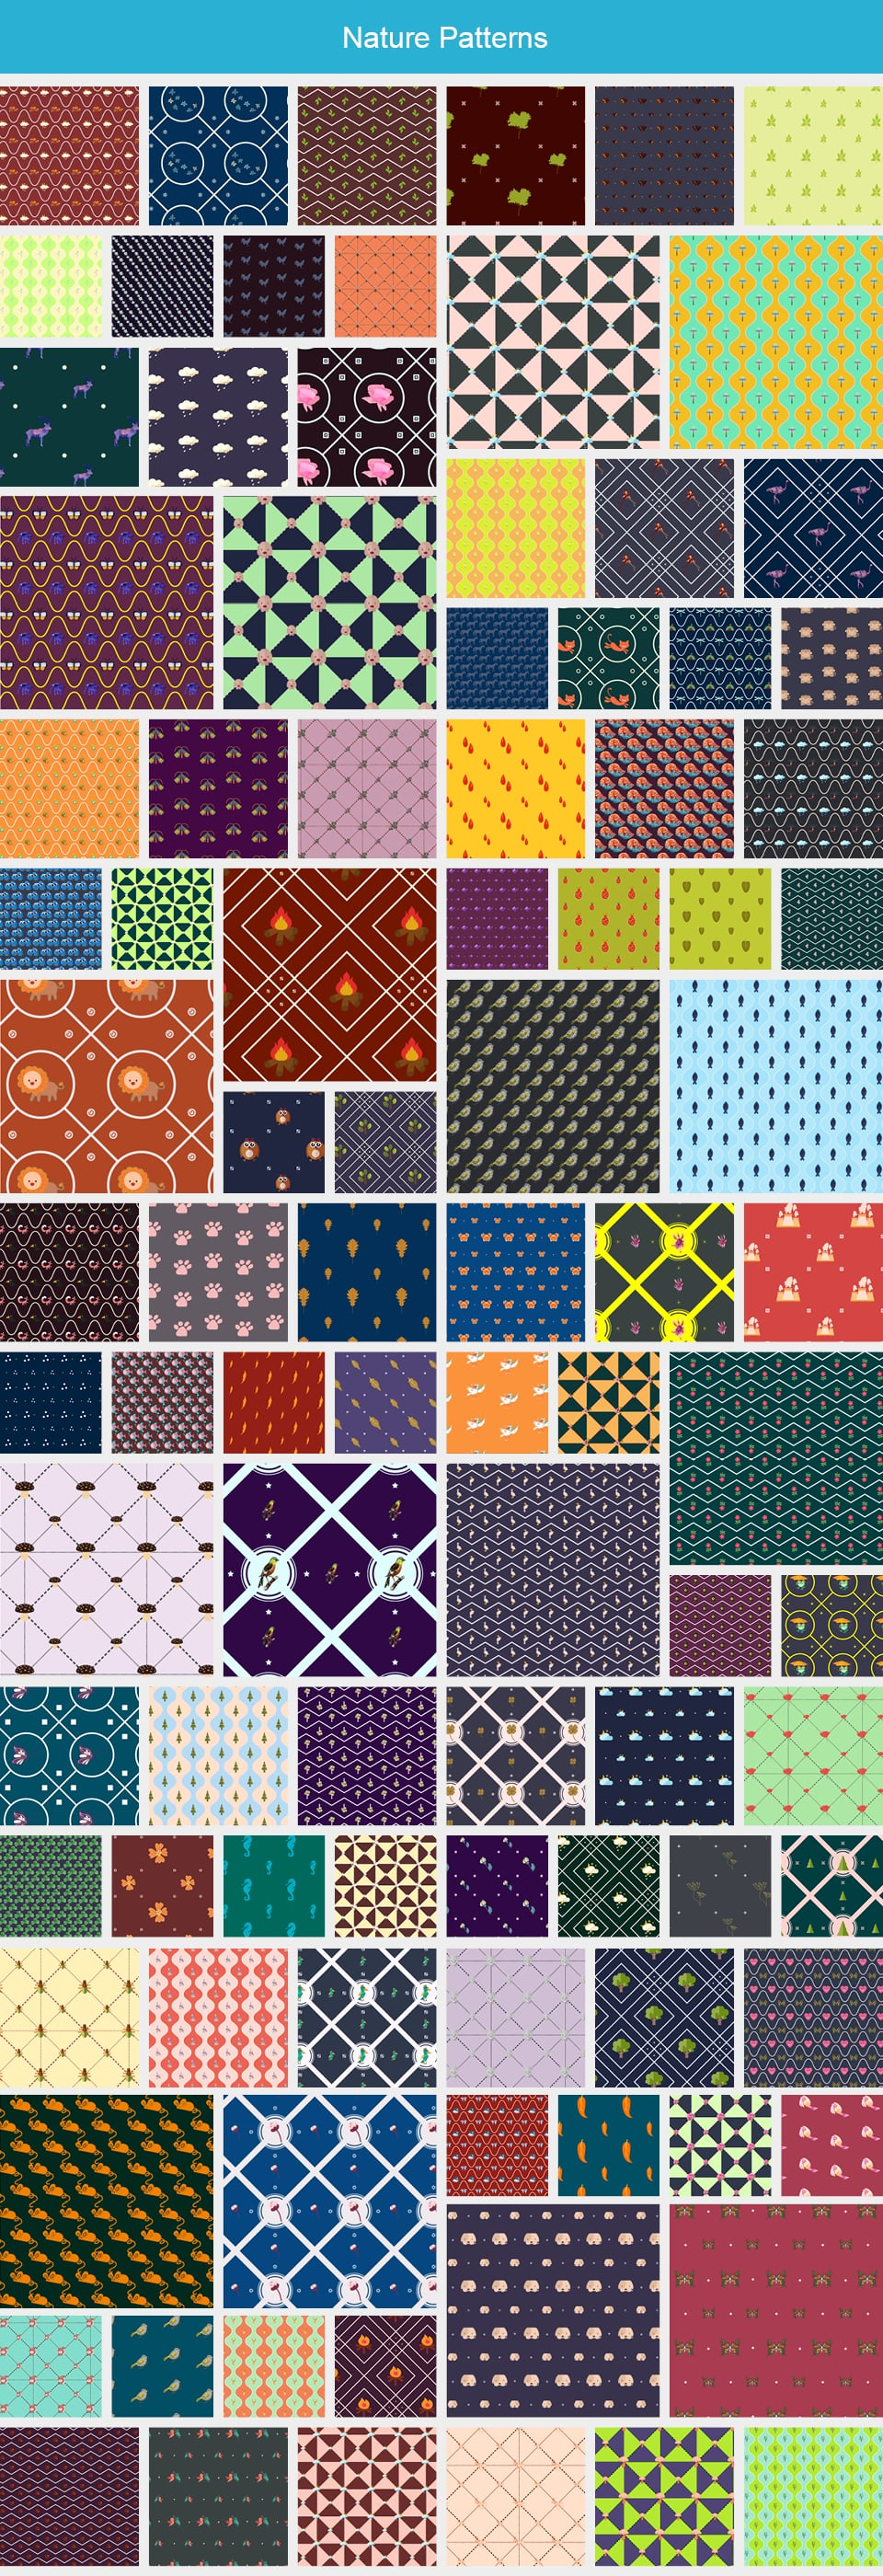 Modern Pattern Designs - Mega Bundle with 2000 Patterns - Large Preview Nature